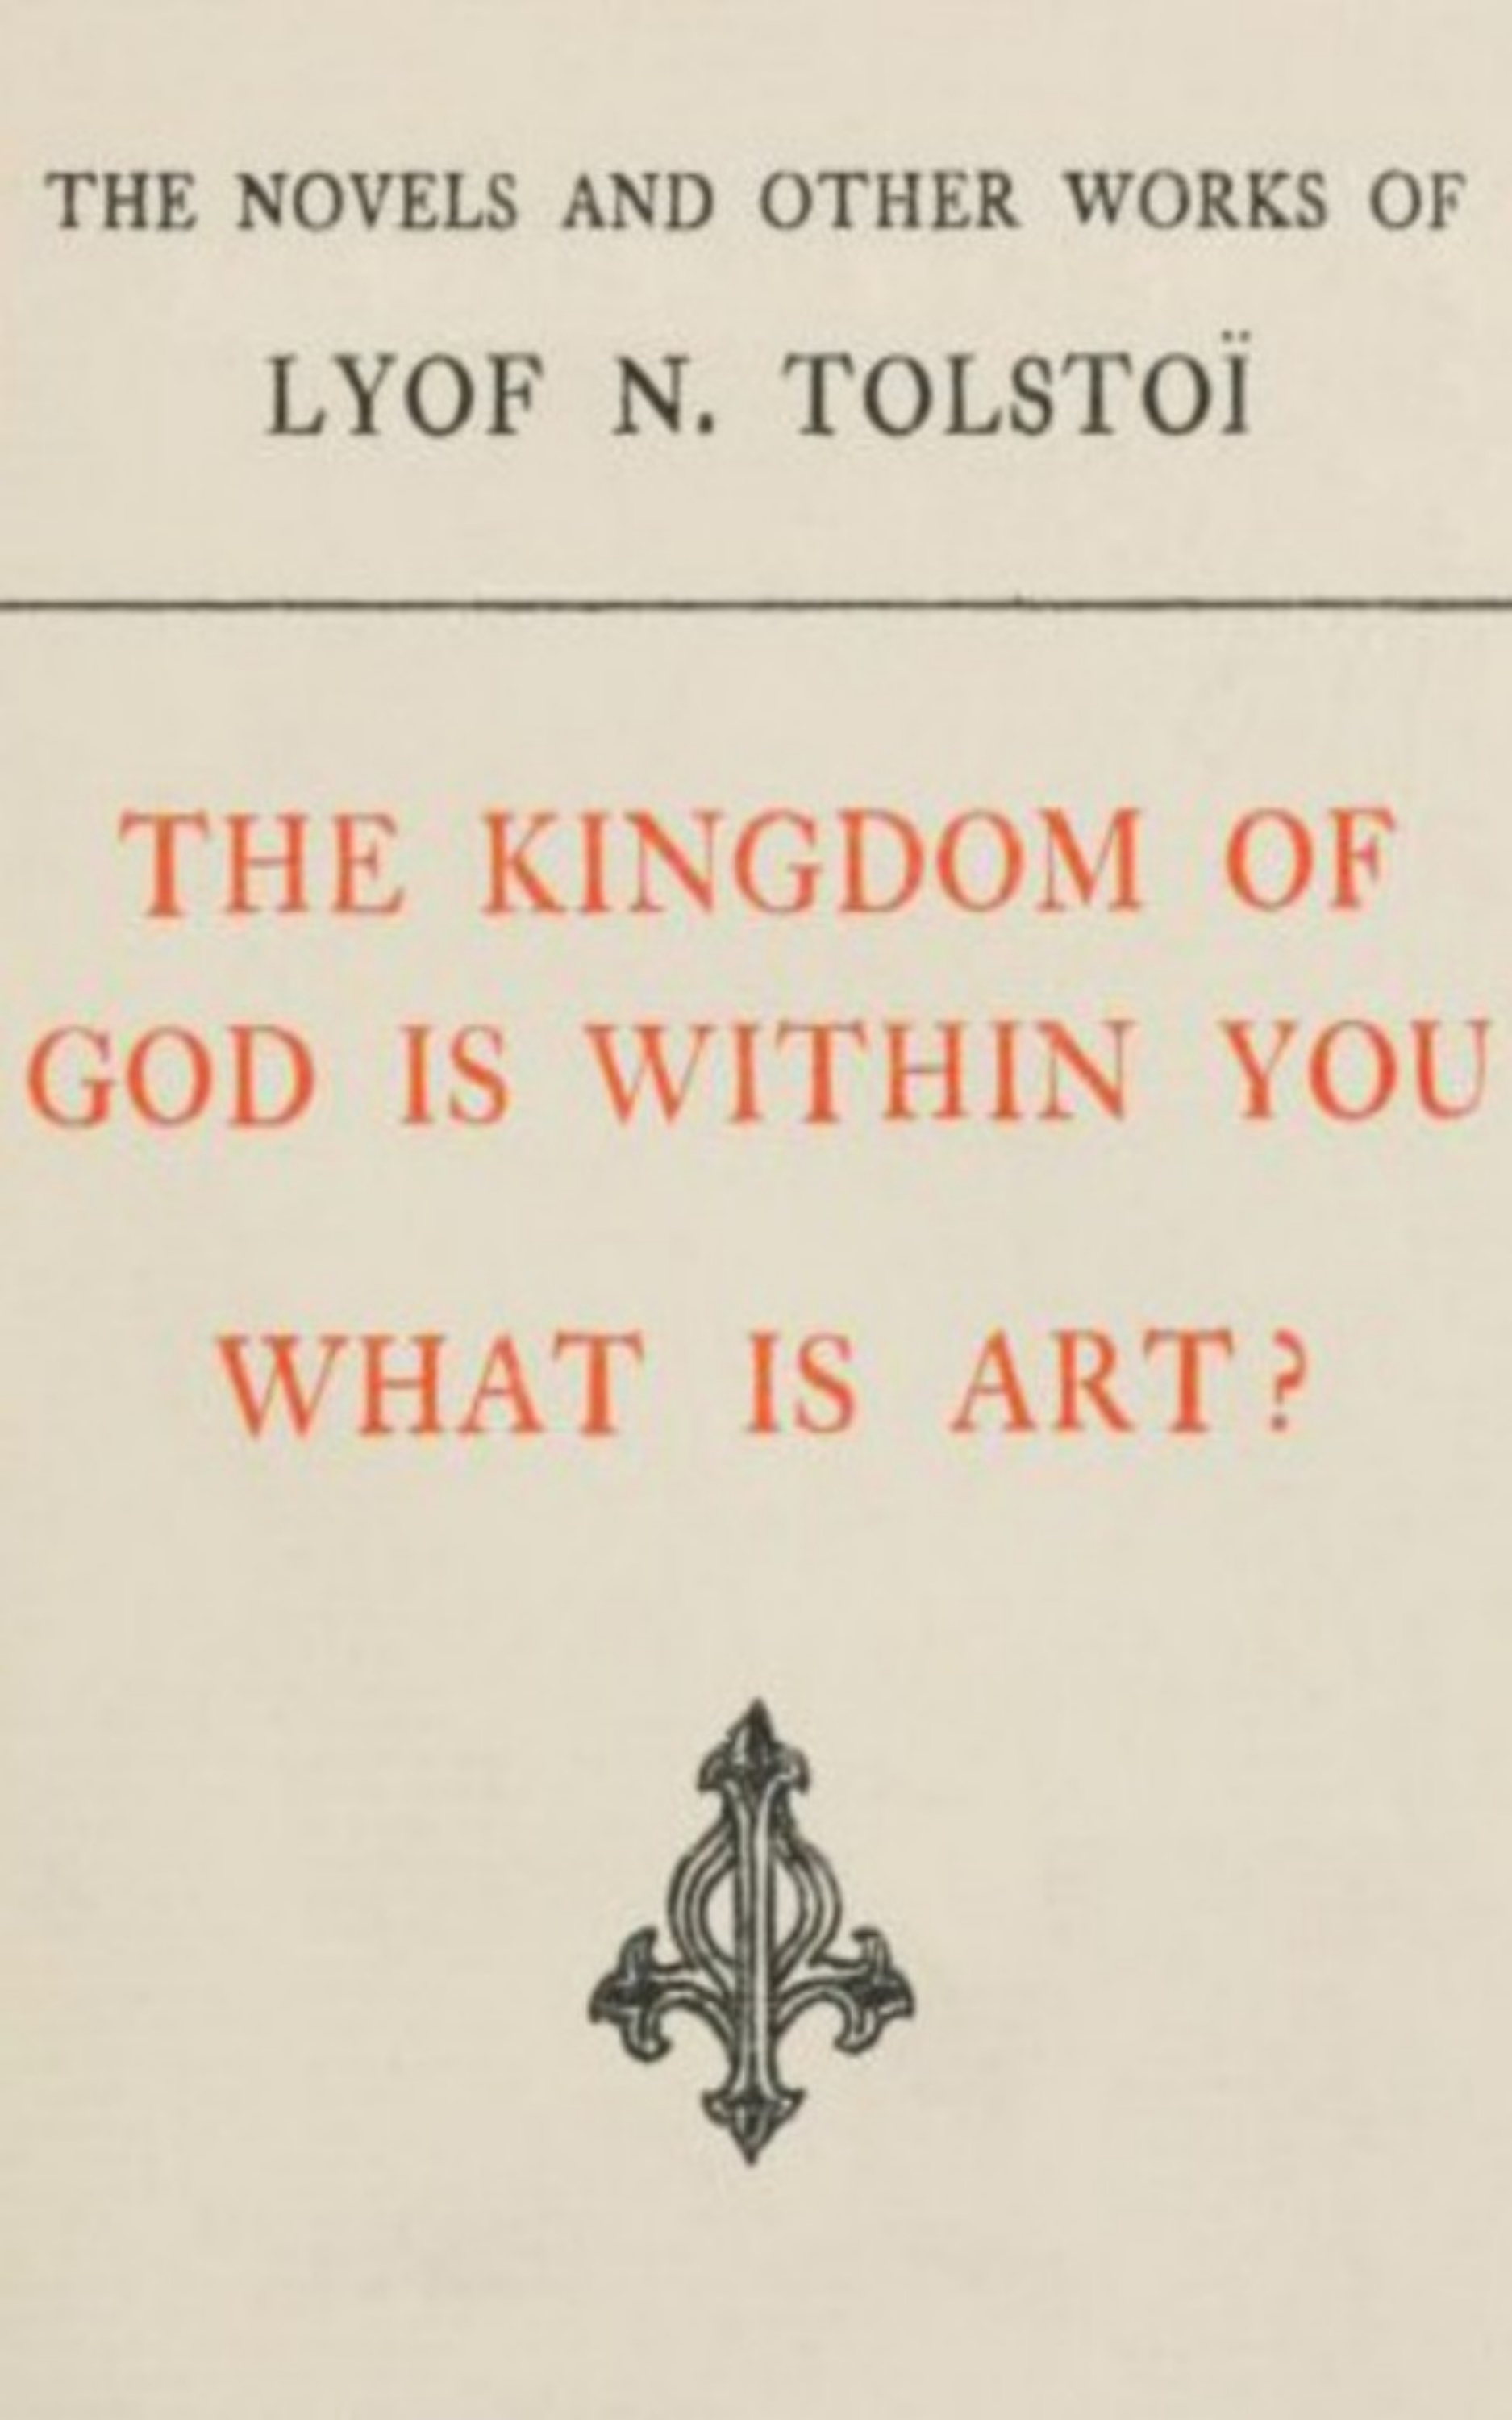 Leo Tolstoy The Kingdom of God is Within You, What is Art farago claire art is not what you think it is